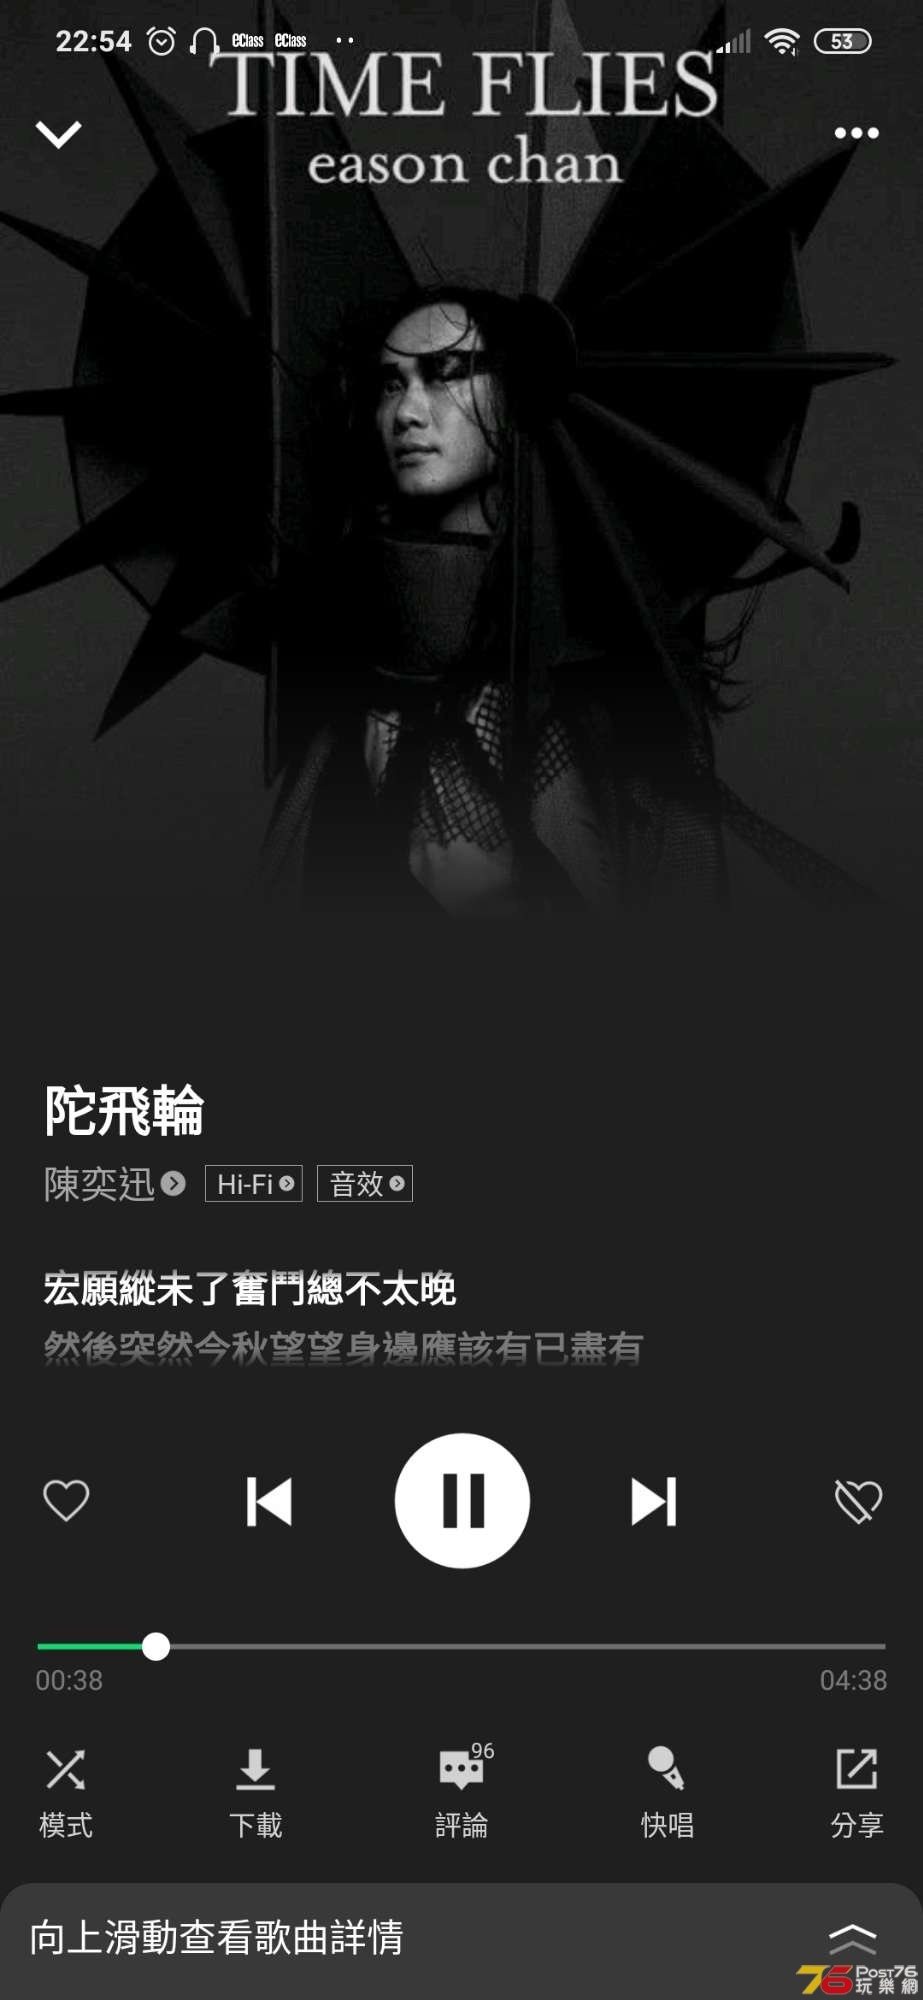 Screenshot_2021-02-10-22-54-21-633_com.tencent.ibg.joox.jpg